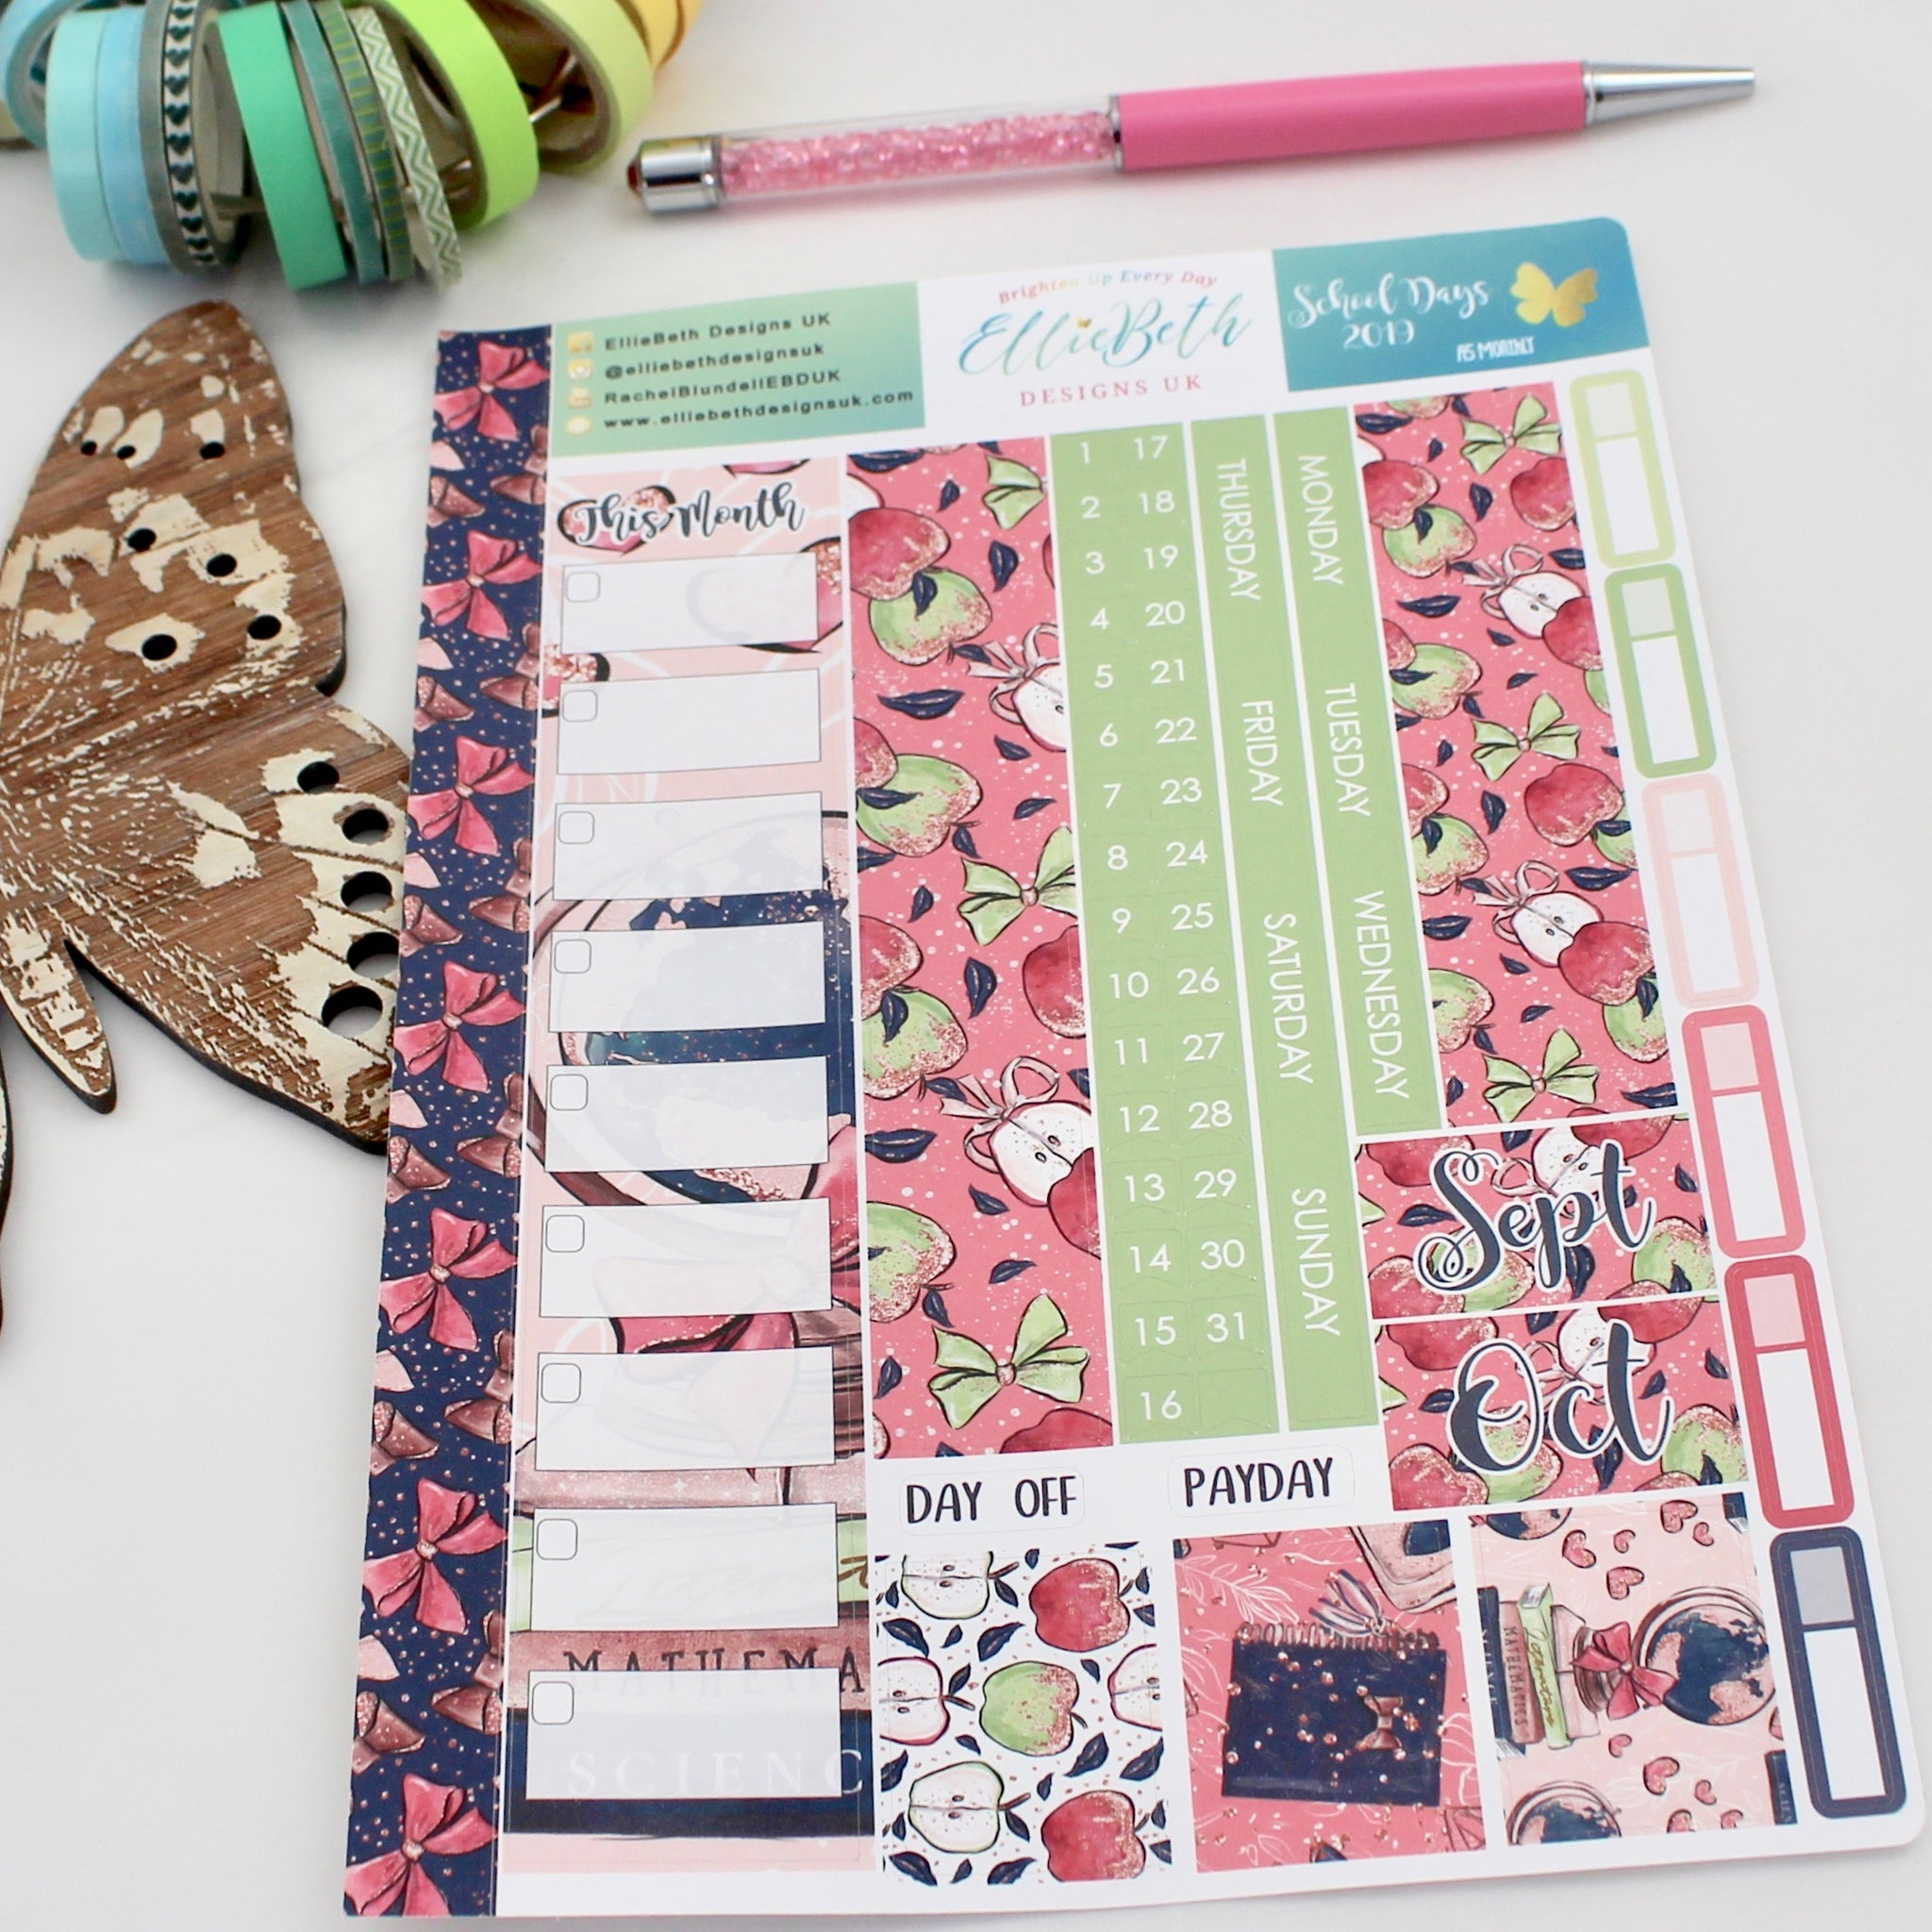 'School Days' - A5 Monthly View Kit - A5 binder ready planner stickers - EllieBeth Designs UK